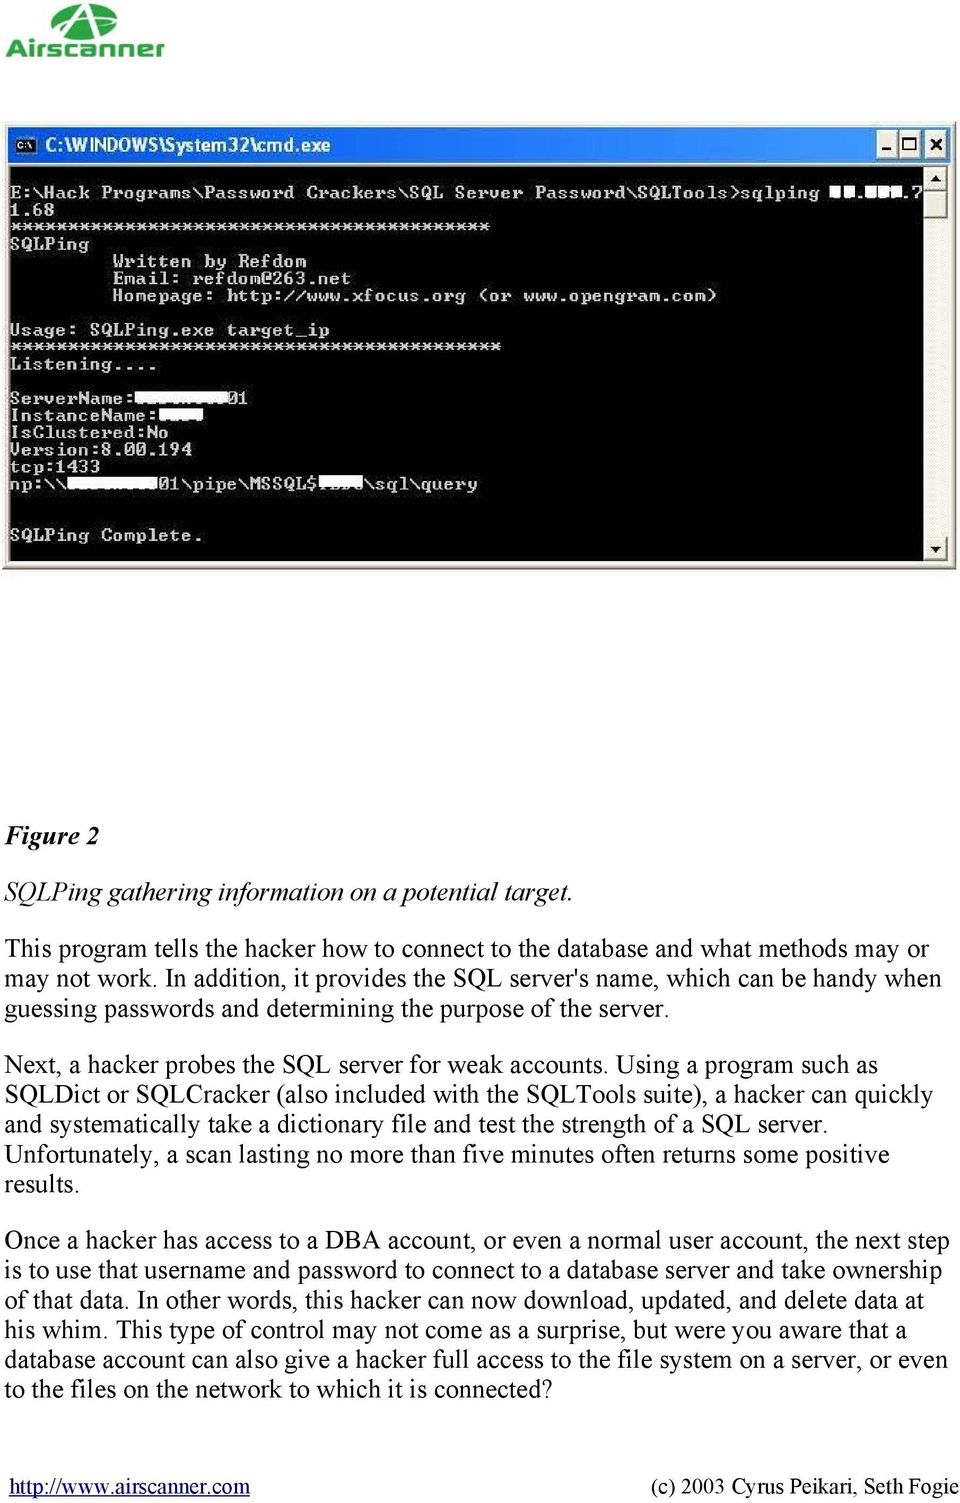 Guarding Against SQL Server Attacks: Hacking, cracking, and